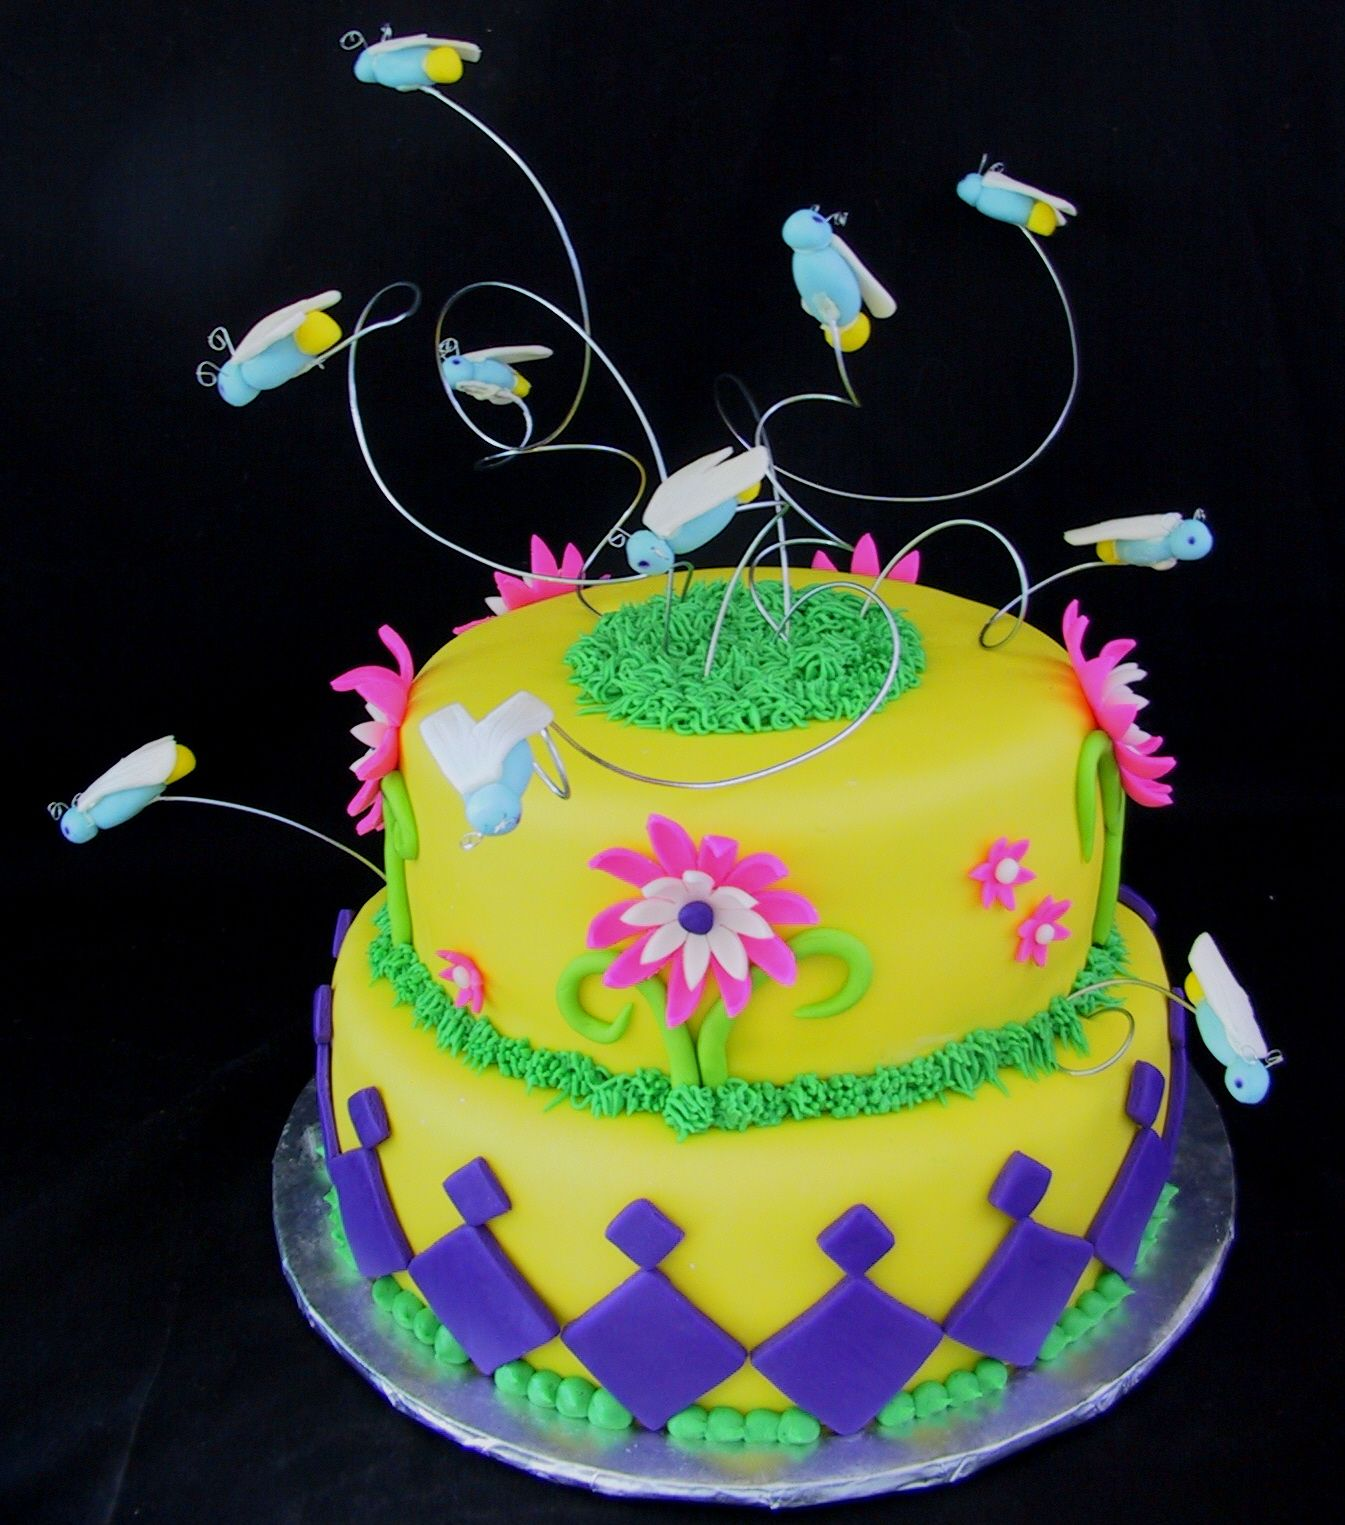 Fondant Firefly and Flower Birthday Cake